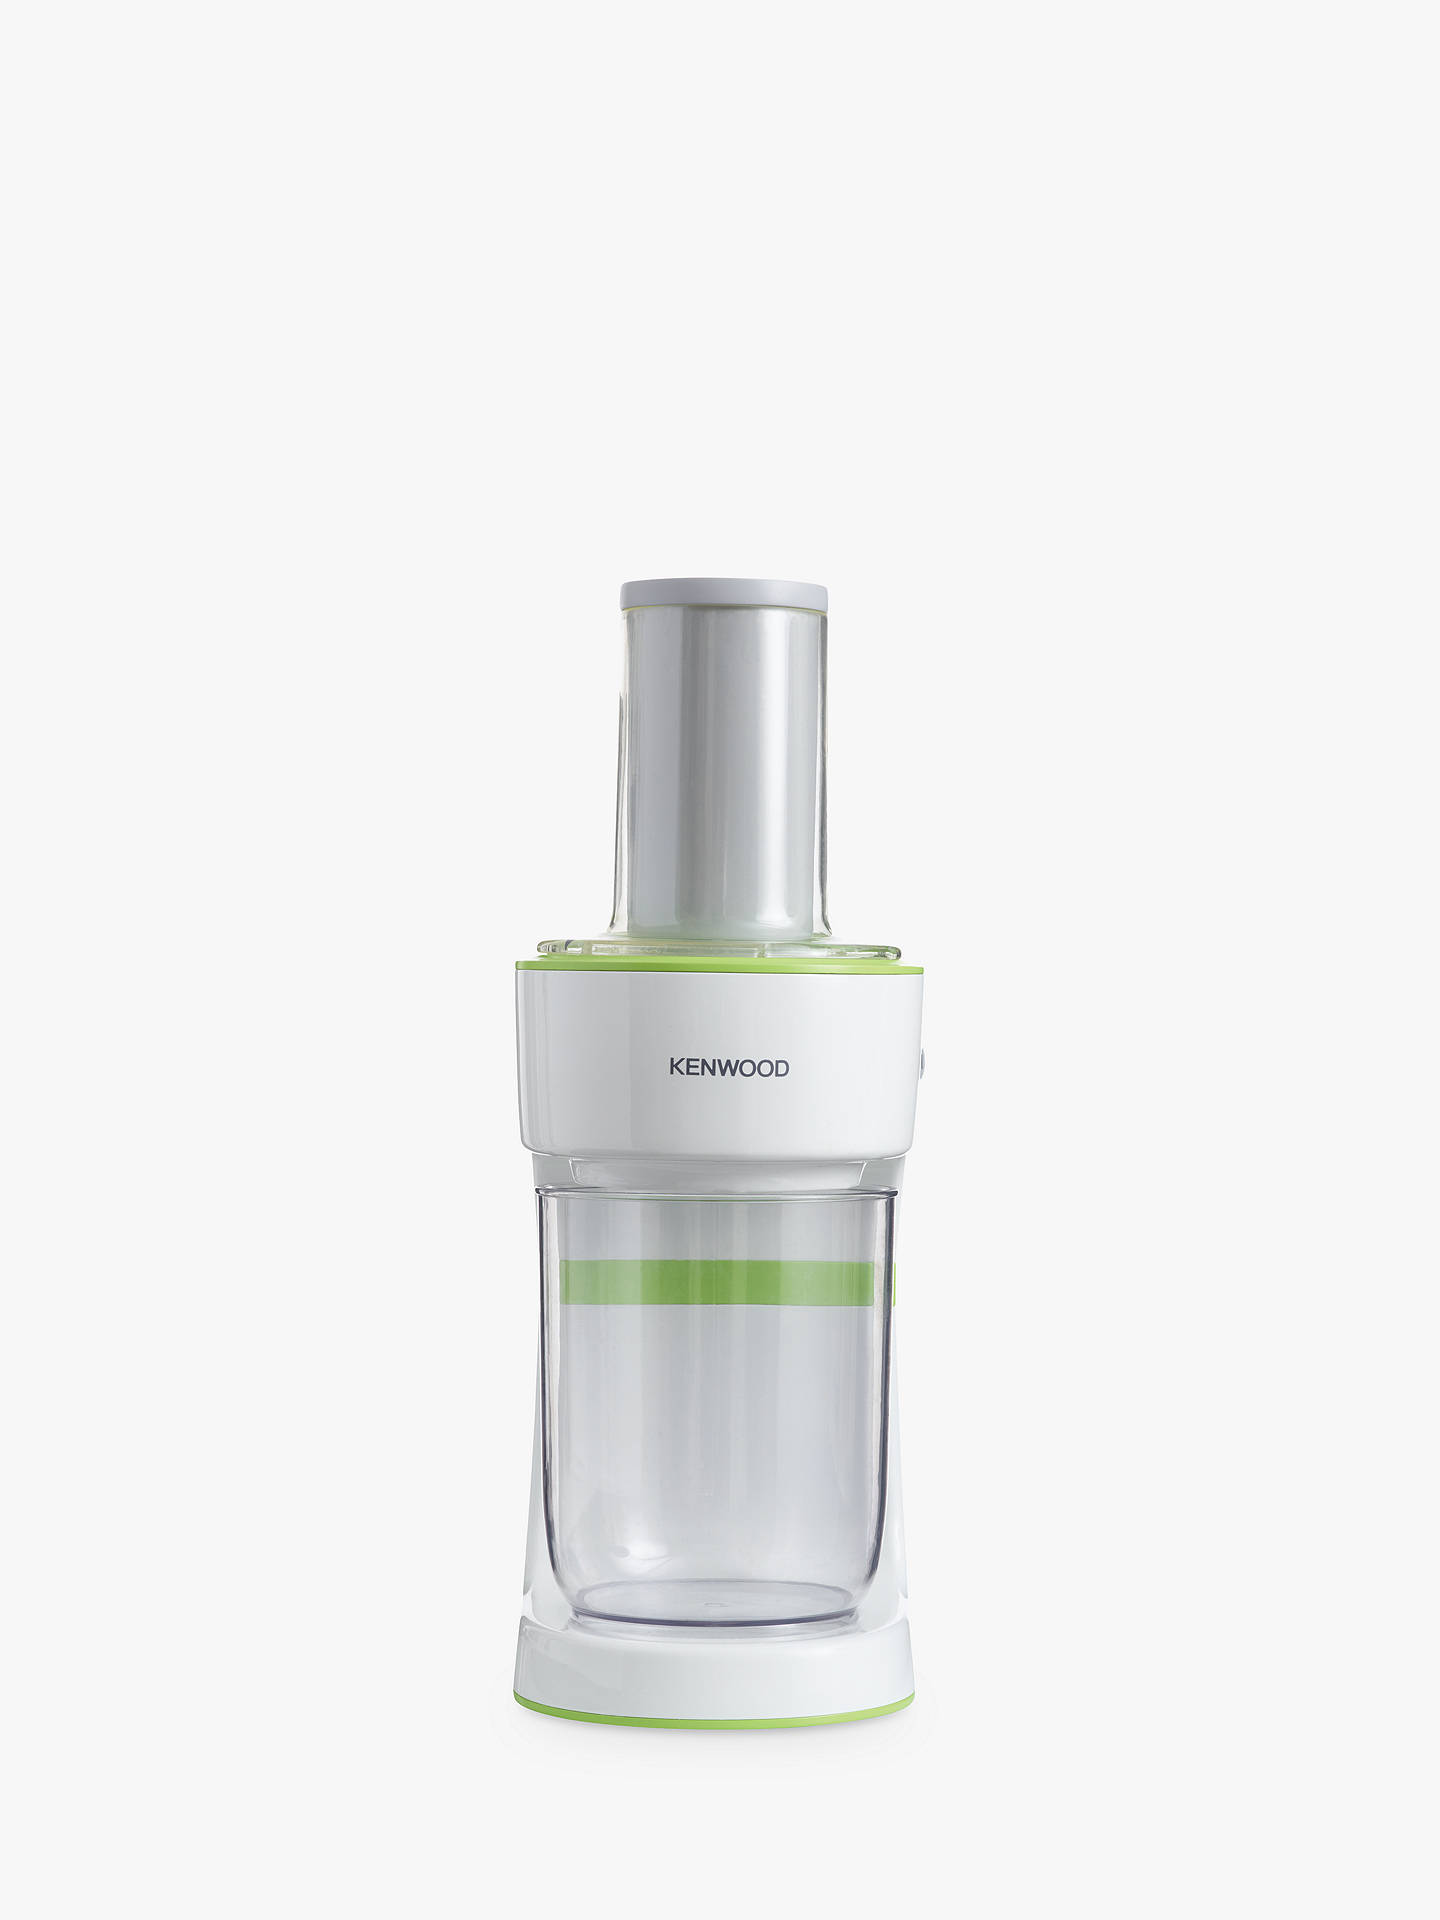 BuyKenwood FGP200WG Electric Spiralizer, White/Green Online at johnlewis.com